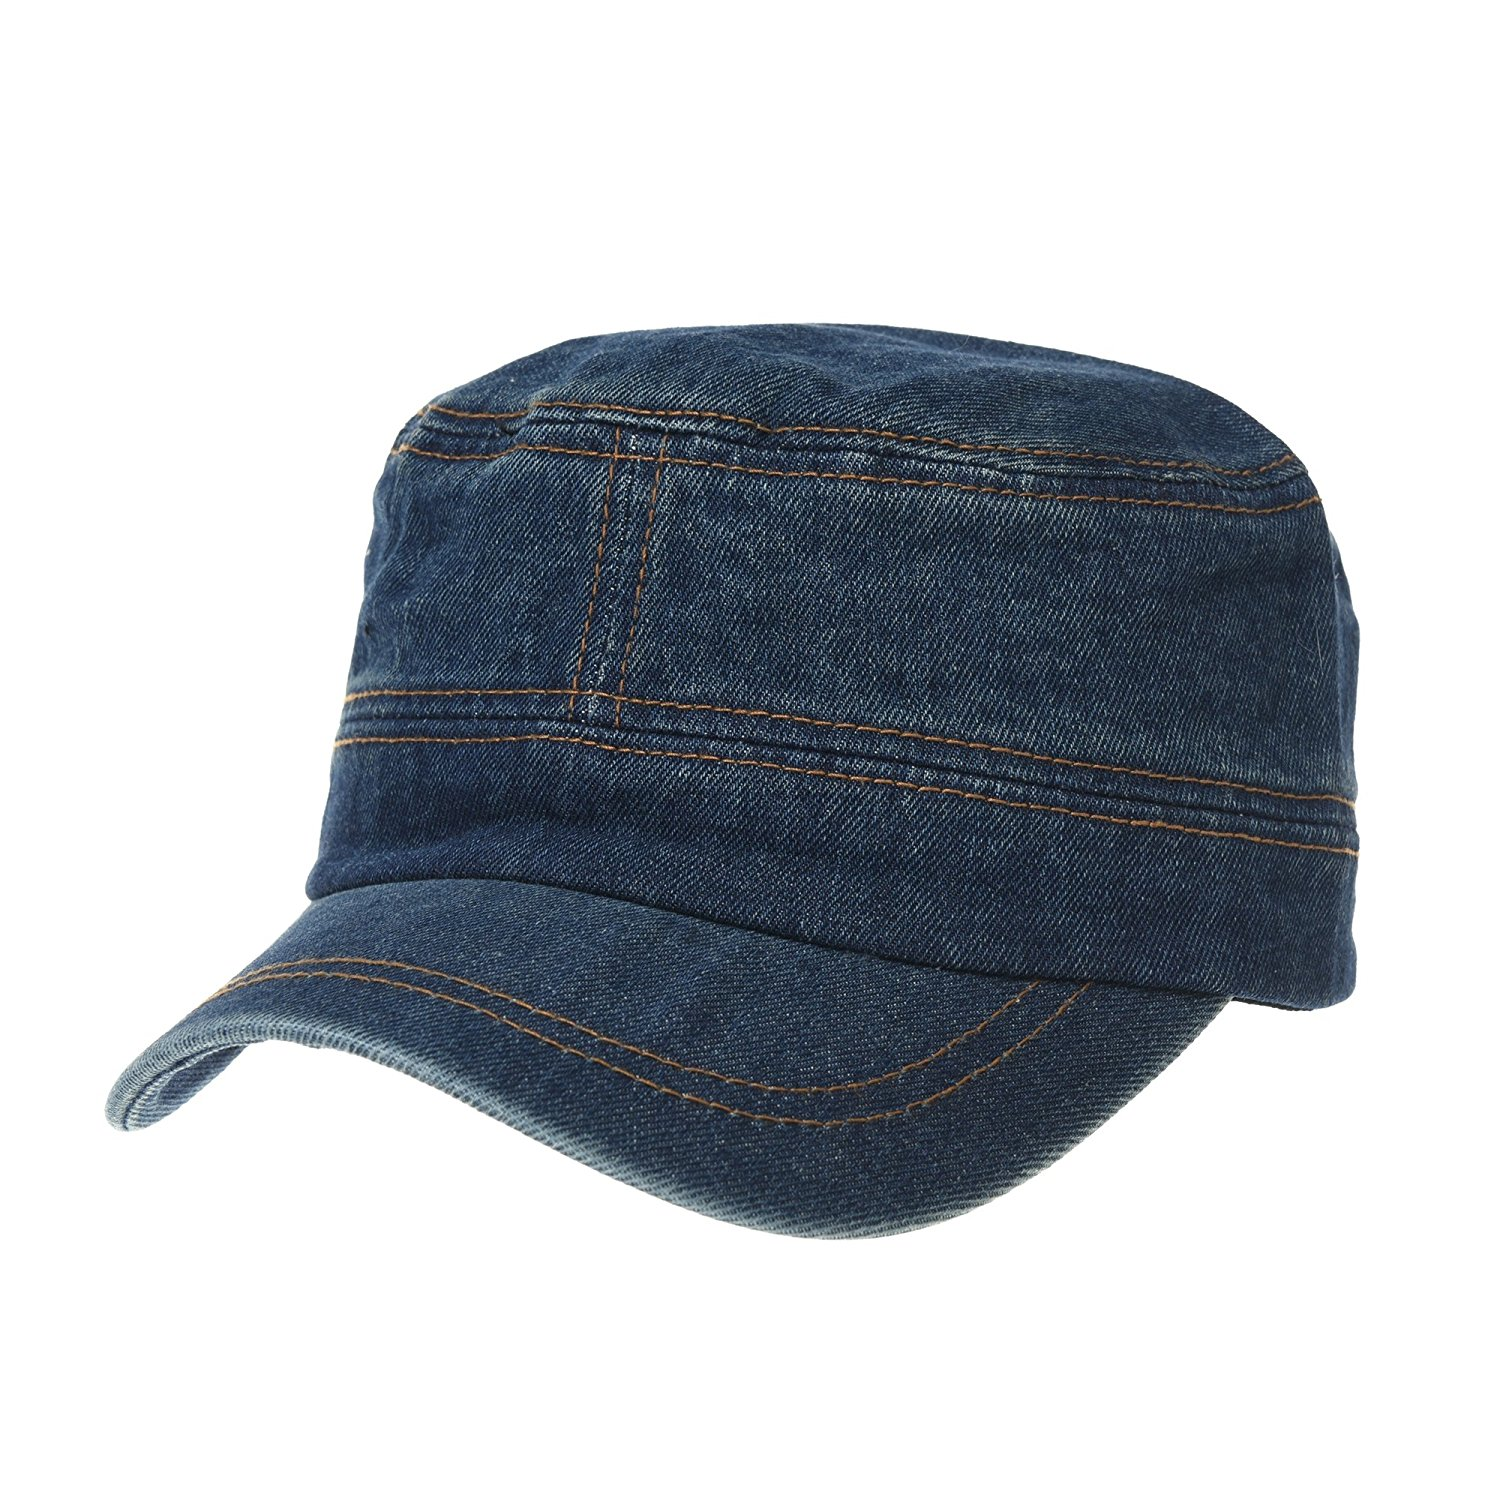 WITHMOONS Army Denim Cadet Cap Cotton Jean Stitch Washed Hat KR4969